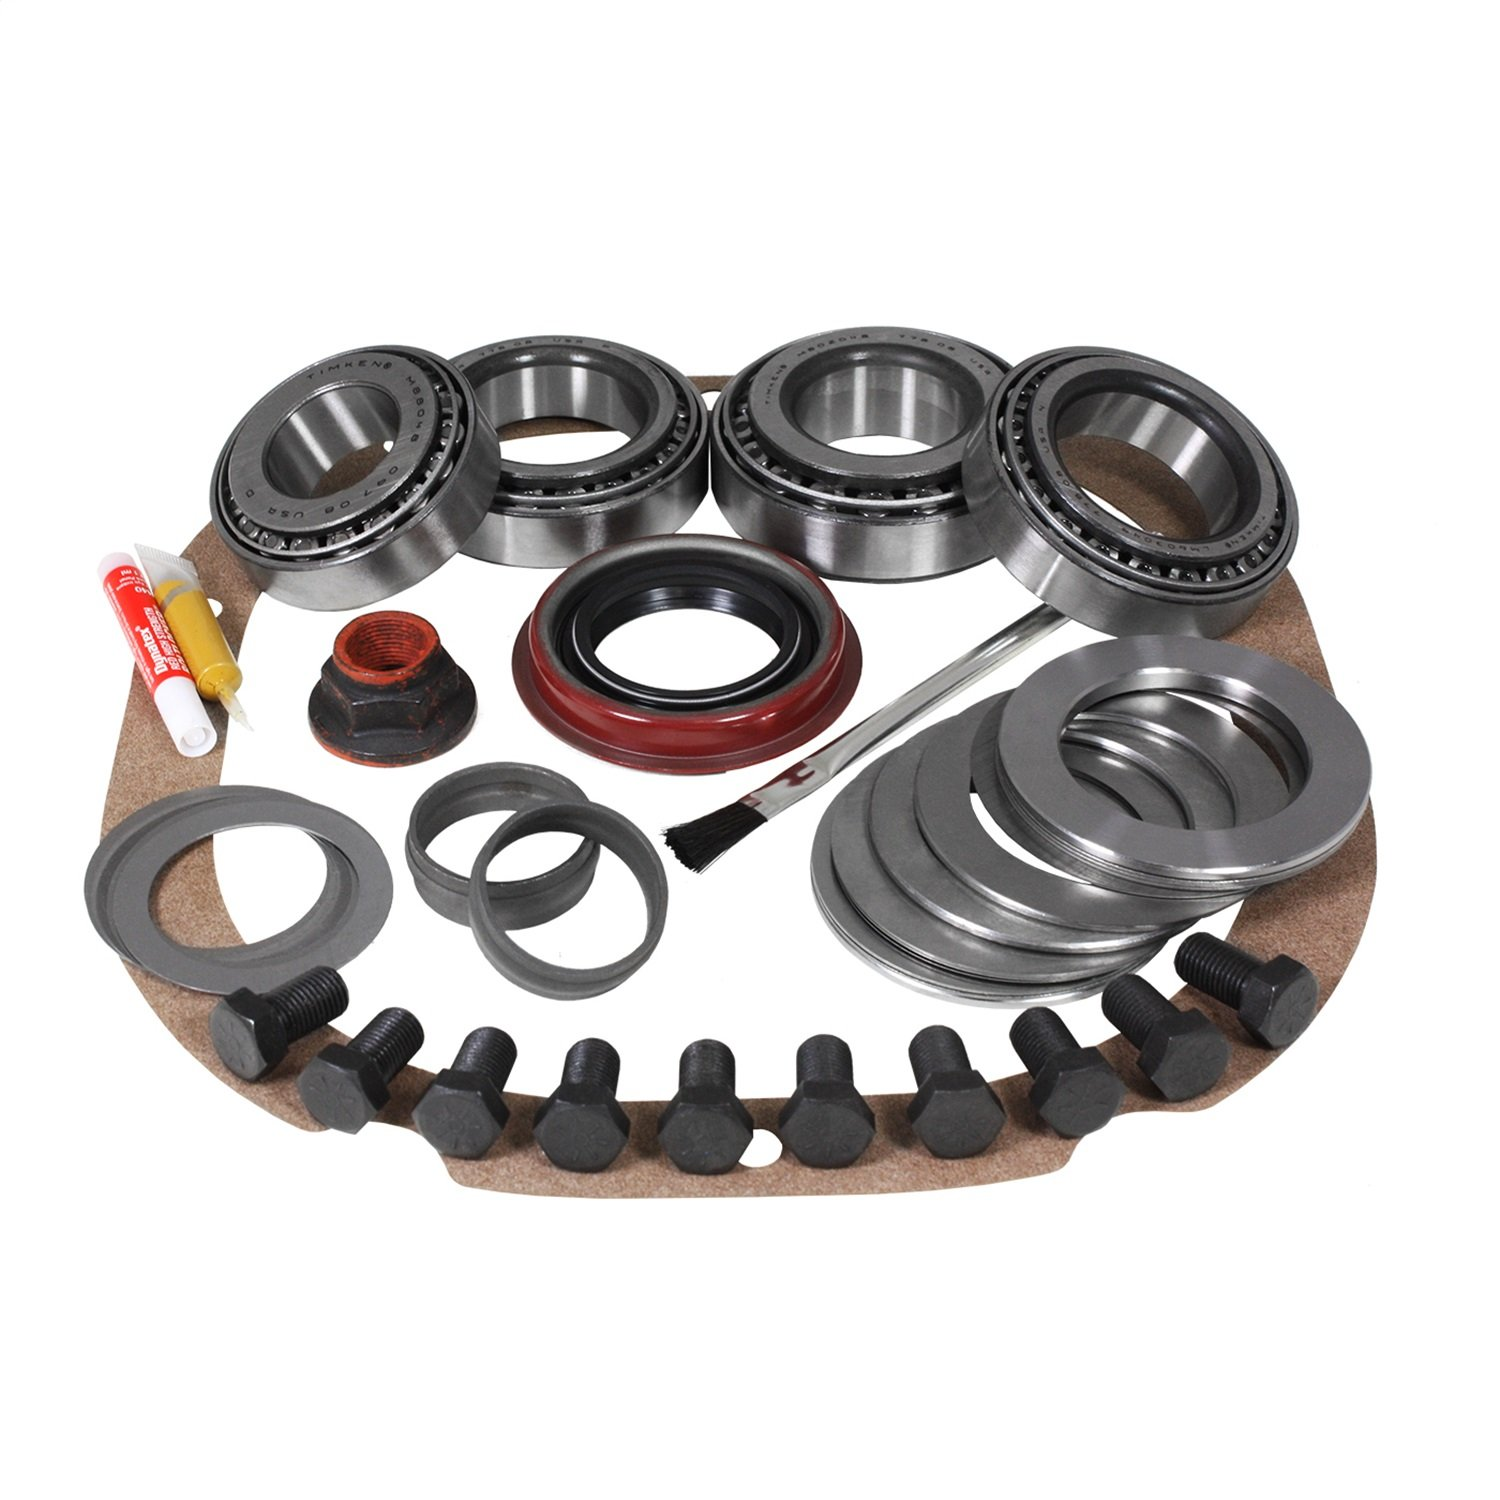 USA Standard Gear Master Overhaul Kit for Ford 7.5 Differential ZK F7.5